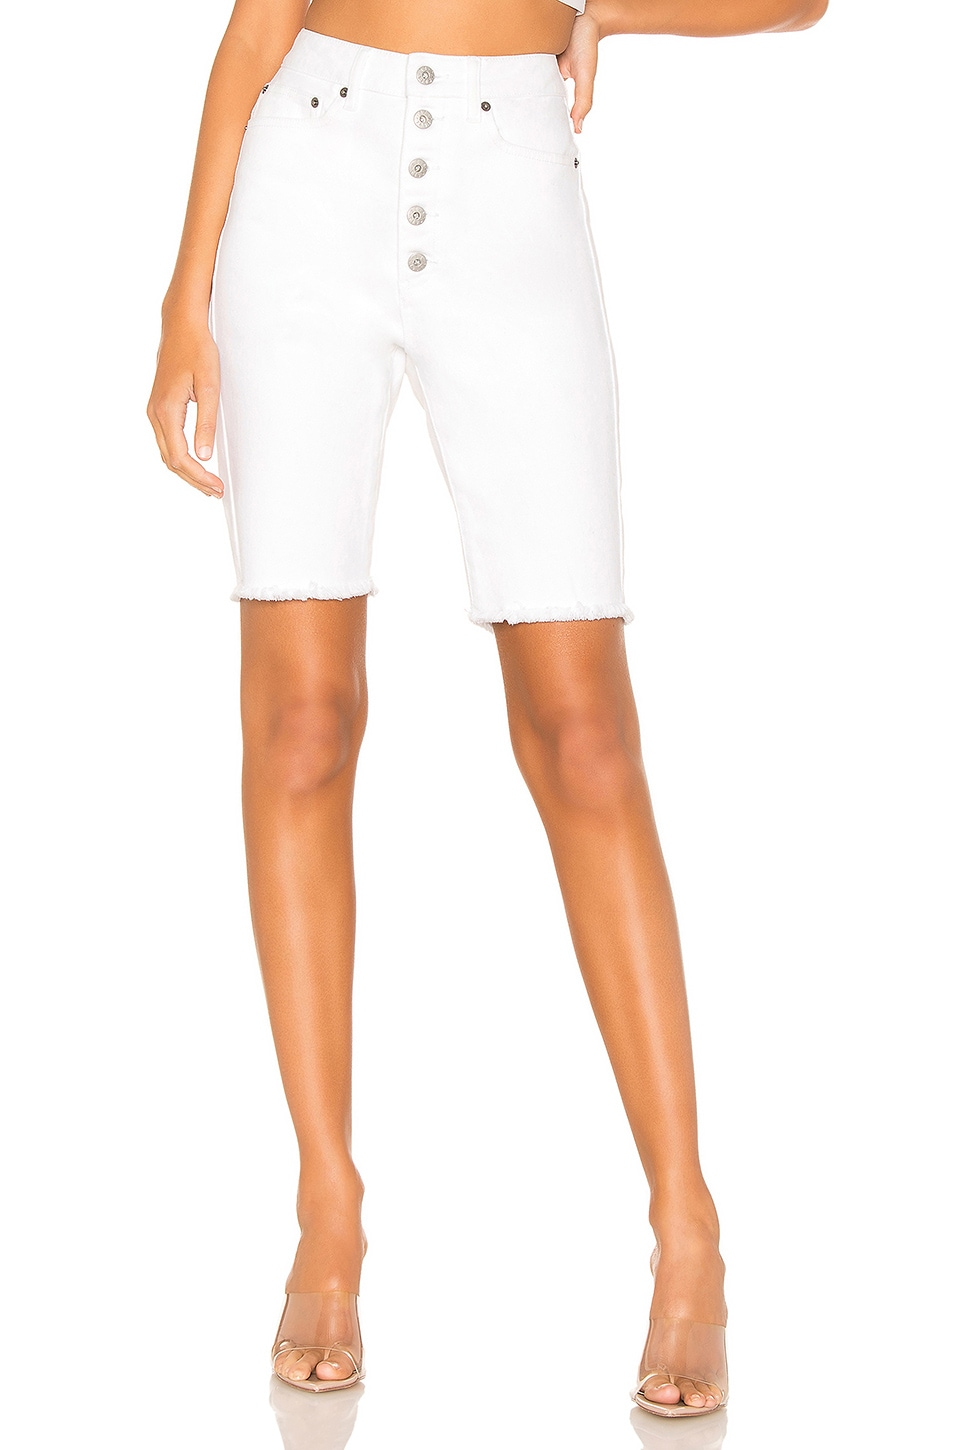 BB Dakota X REVOLVE Headliner Short in White